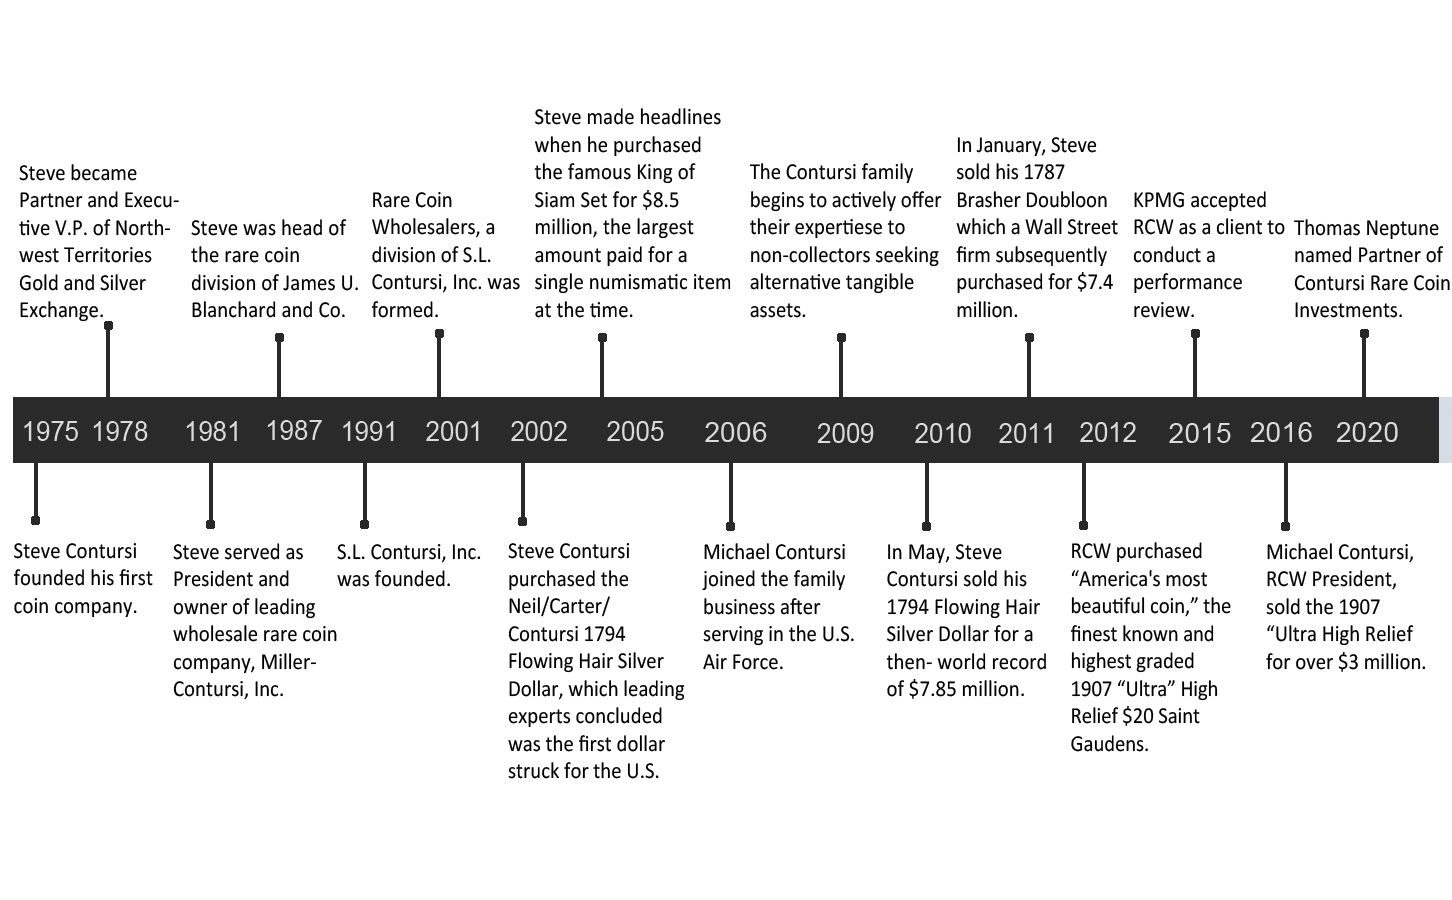 Image of Company Timeline